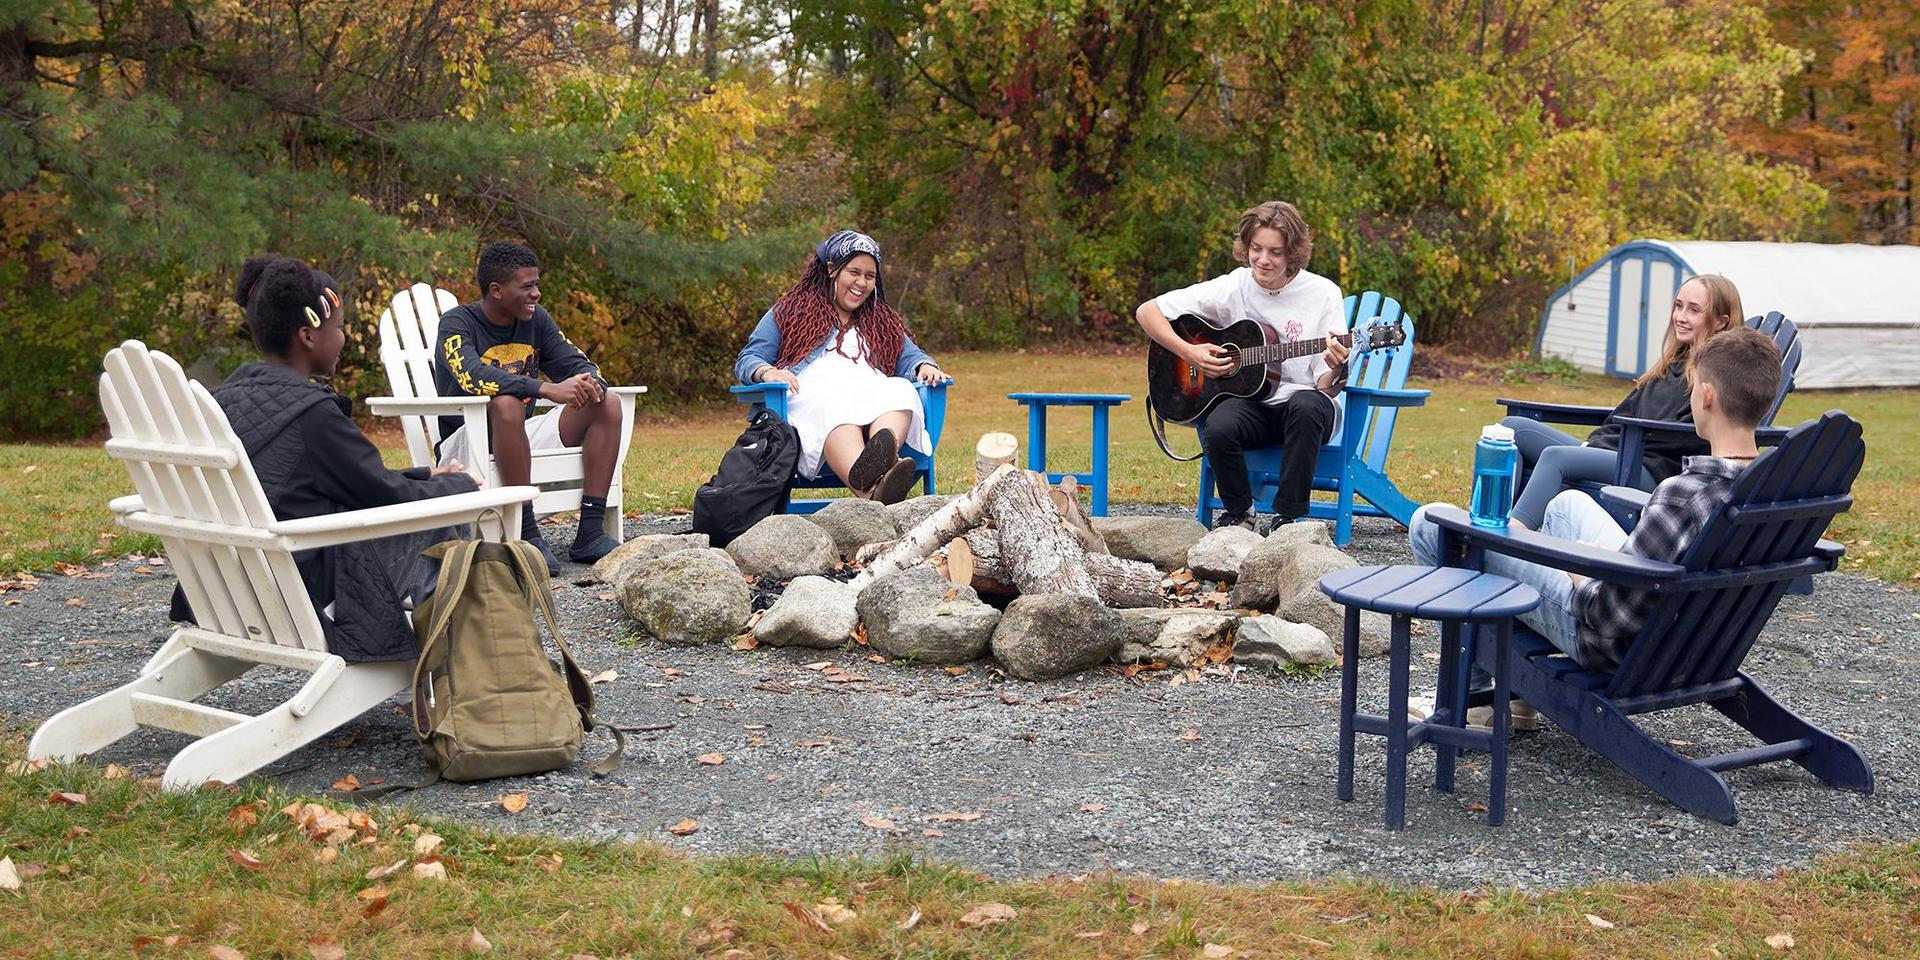 A group of students around a firepit listening to a student on the guitar.